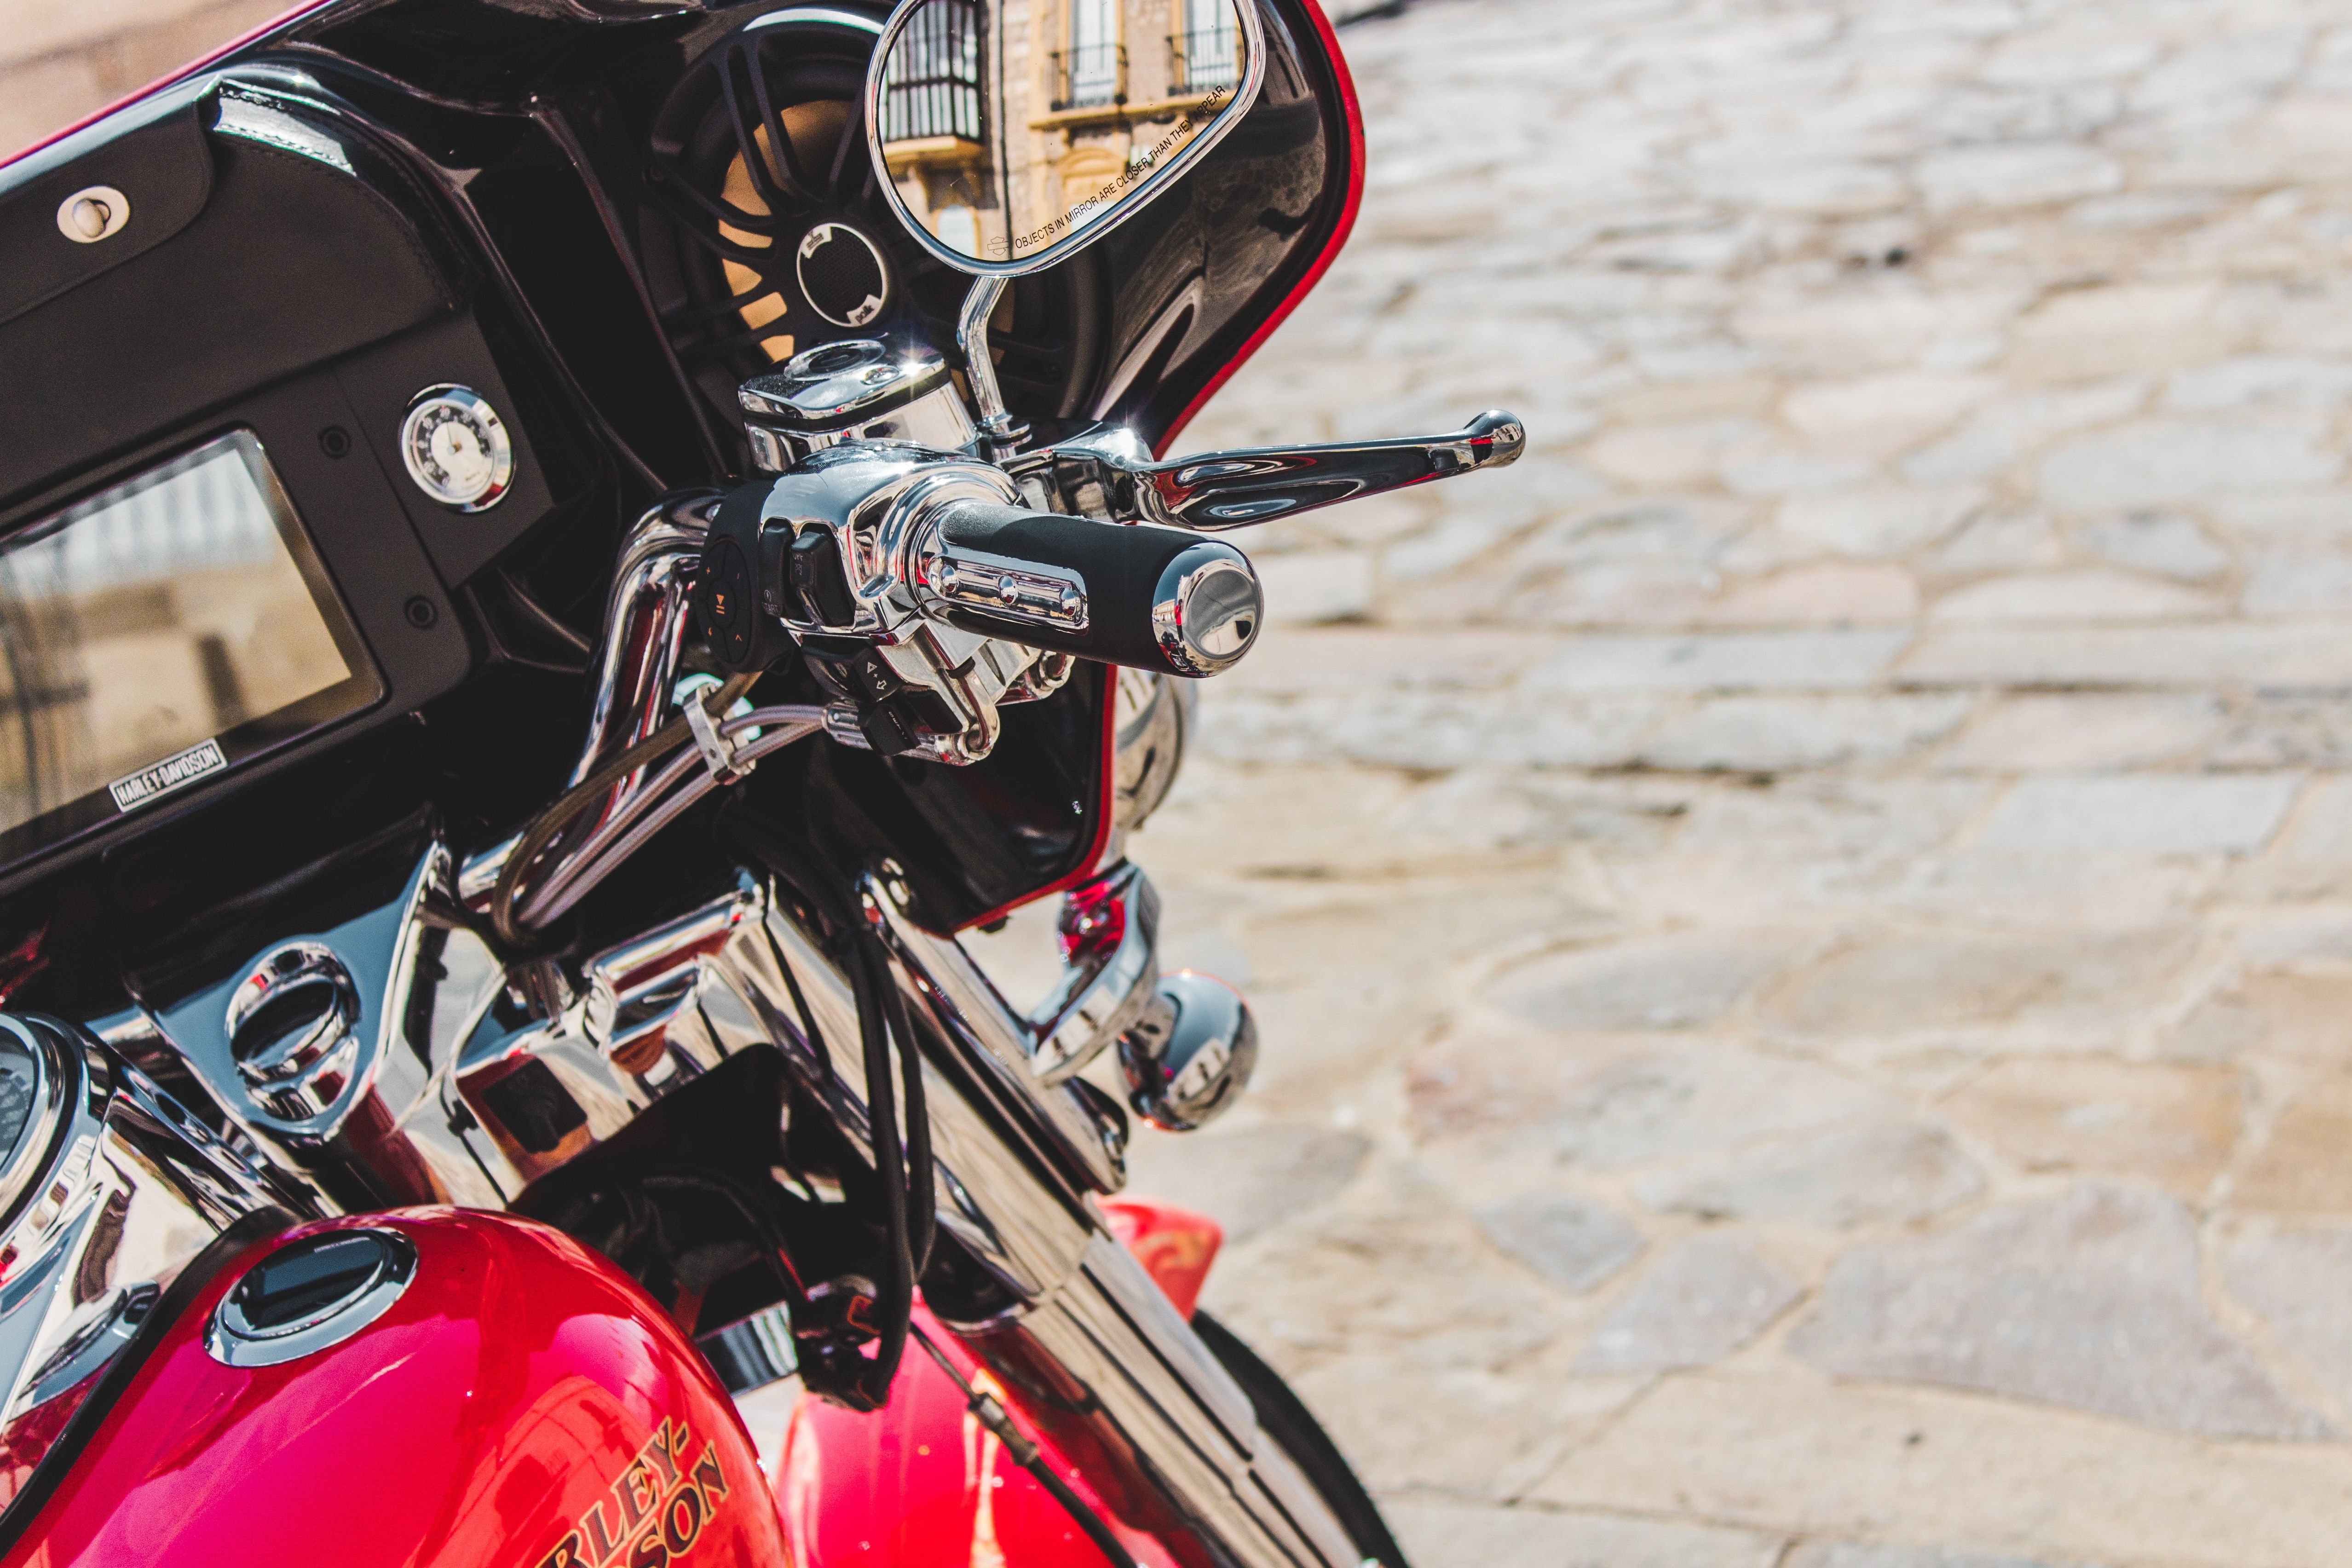 closeup photo of motorcycle